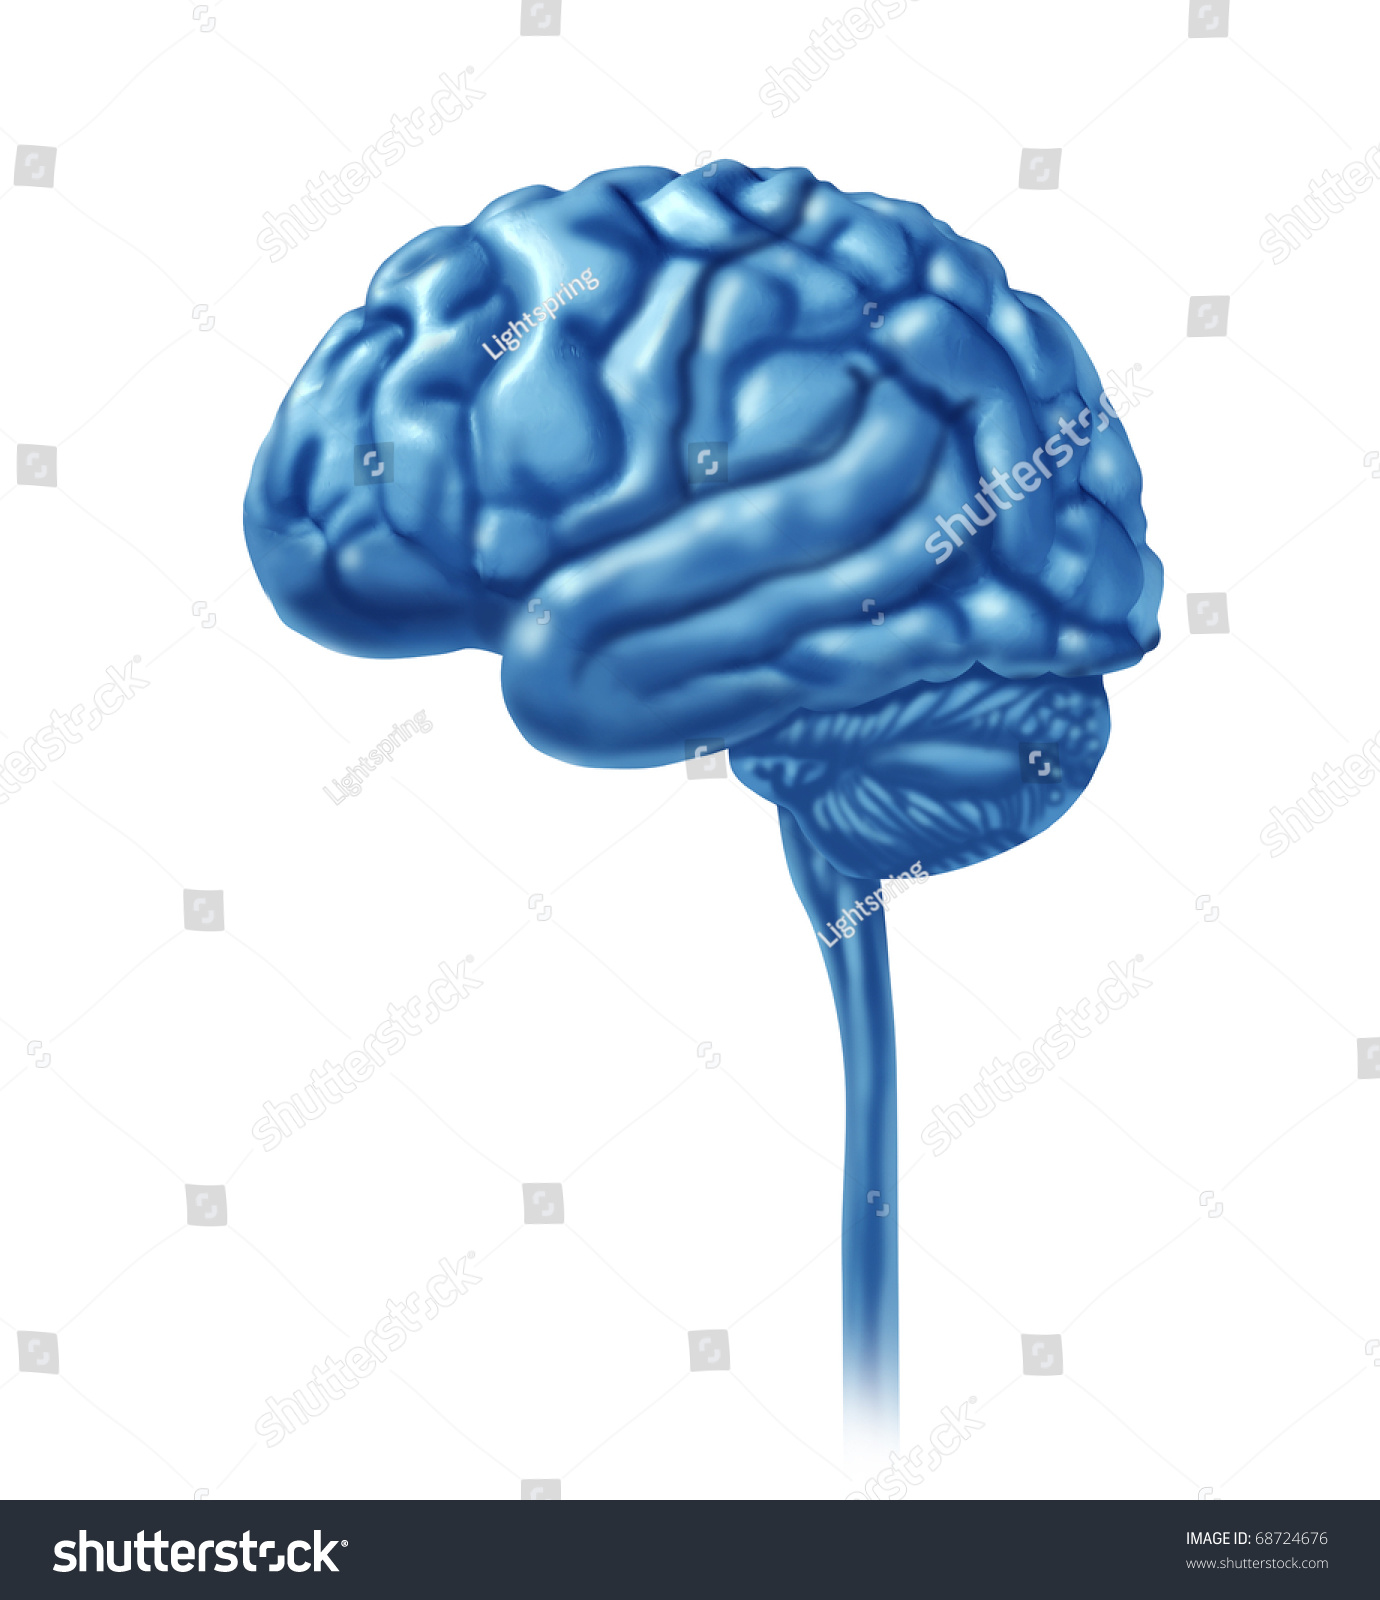 brain lobe sections divisions of mental neurological lobes activity isolated stock photo. Black Bedroom Furniture Sets. Home Design Ideas